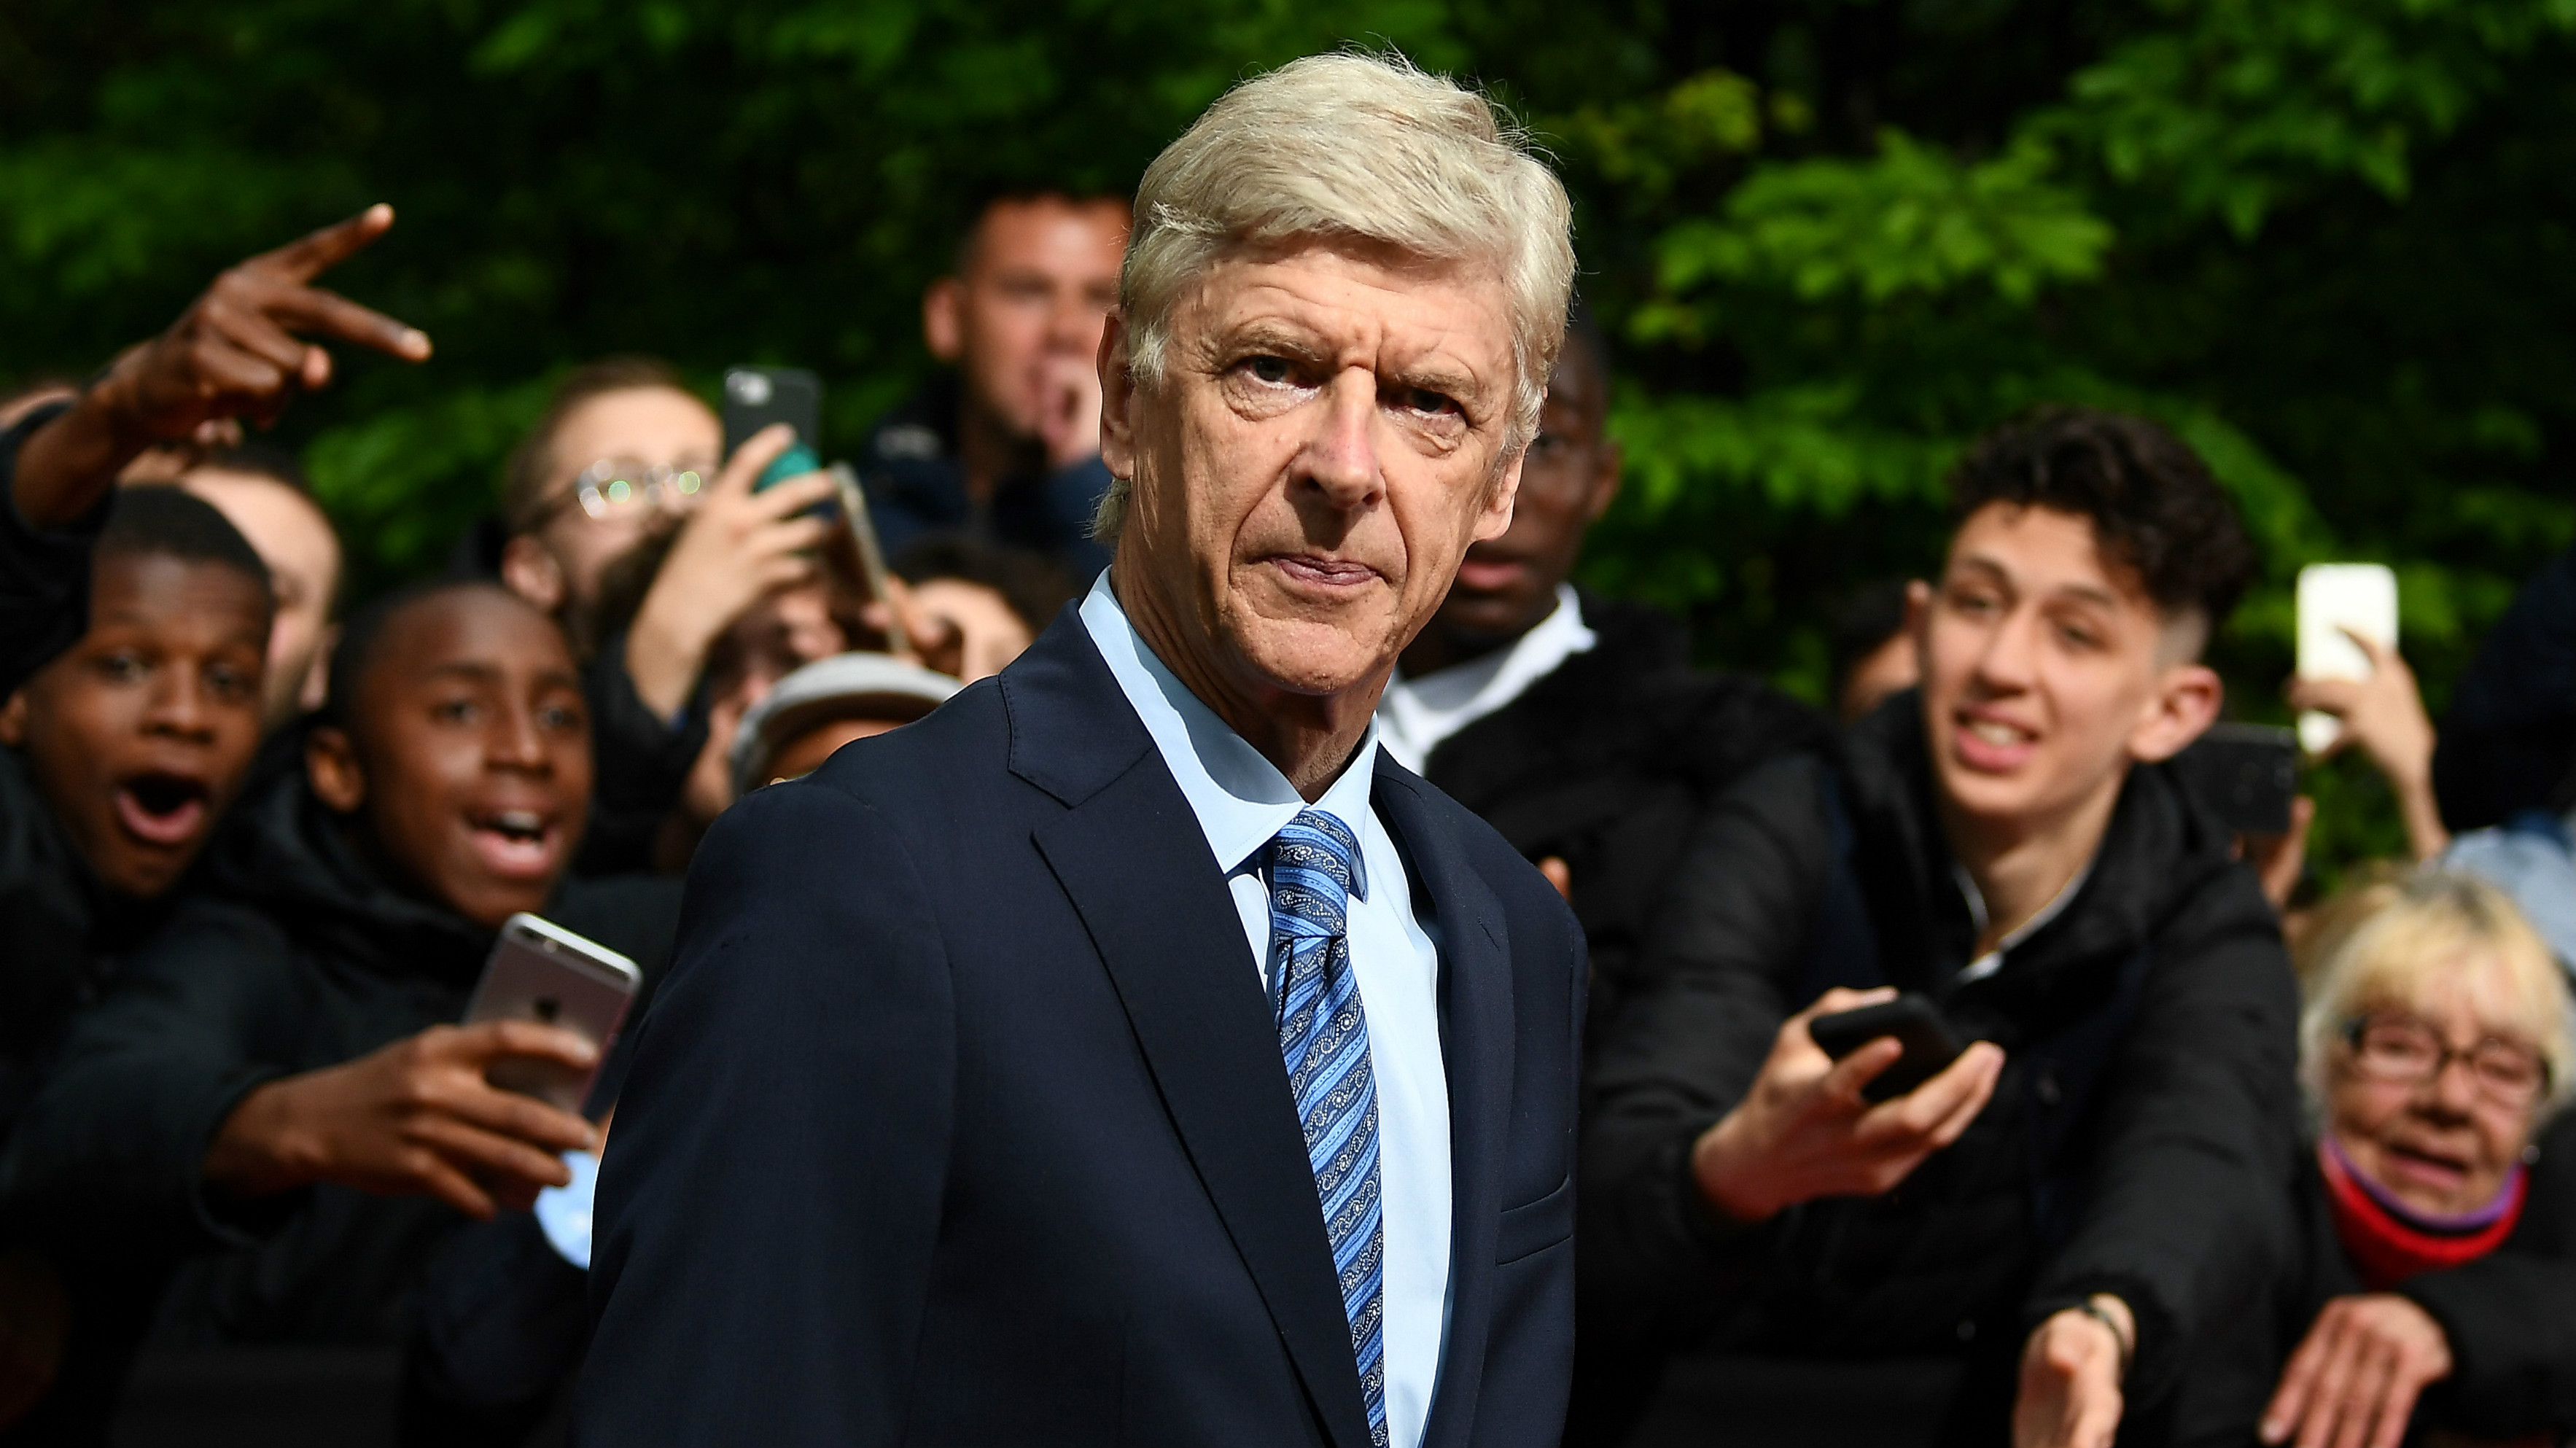 Arsenal left their soul at Highbury after moving to Emirates Stadium - Wenger